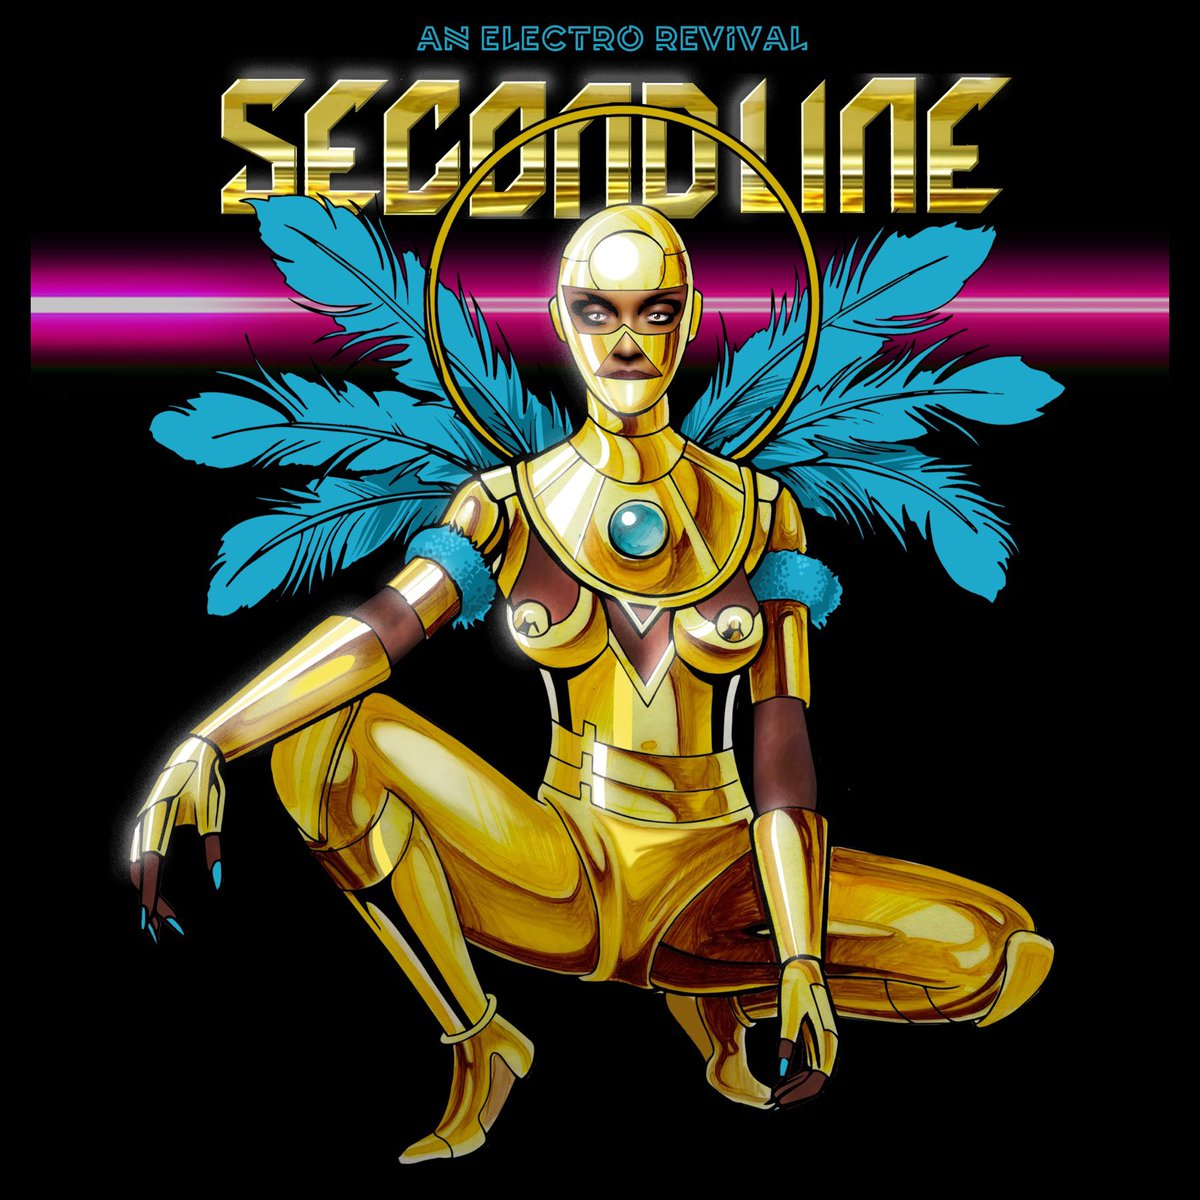 """Much love to the talented @DawnRichard for having me design the cover for her album """"Secondline."""" (dropping April 30th) This def was a fun project for me. 🙏🏾⚜️"""